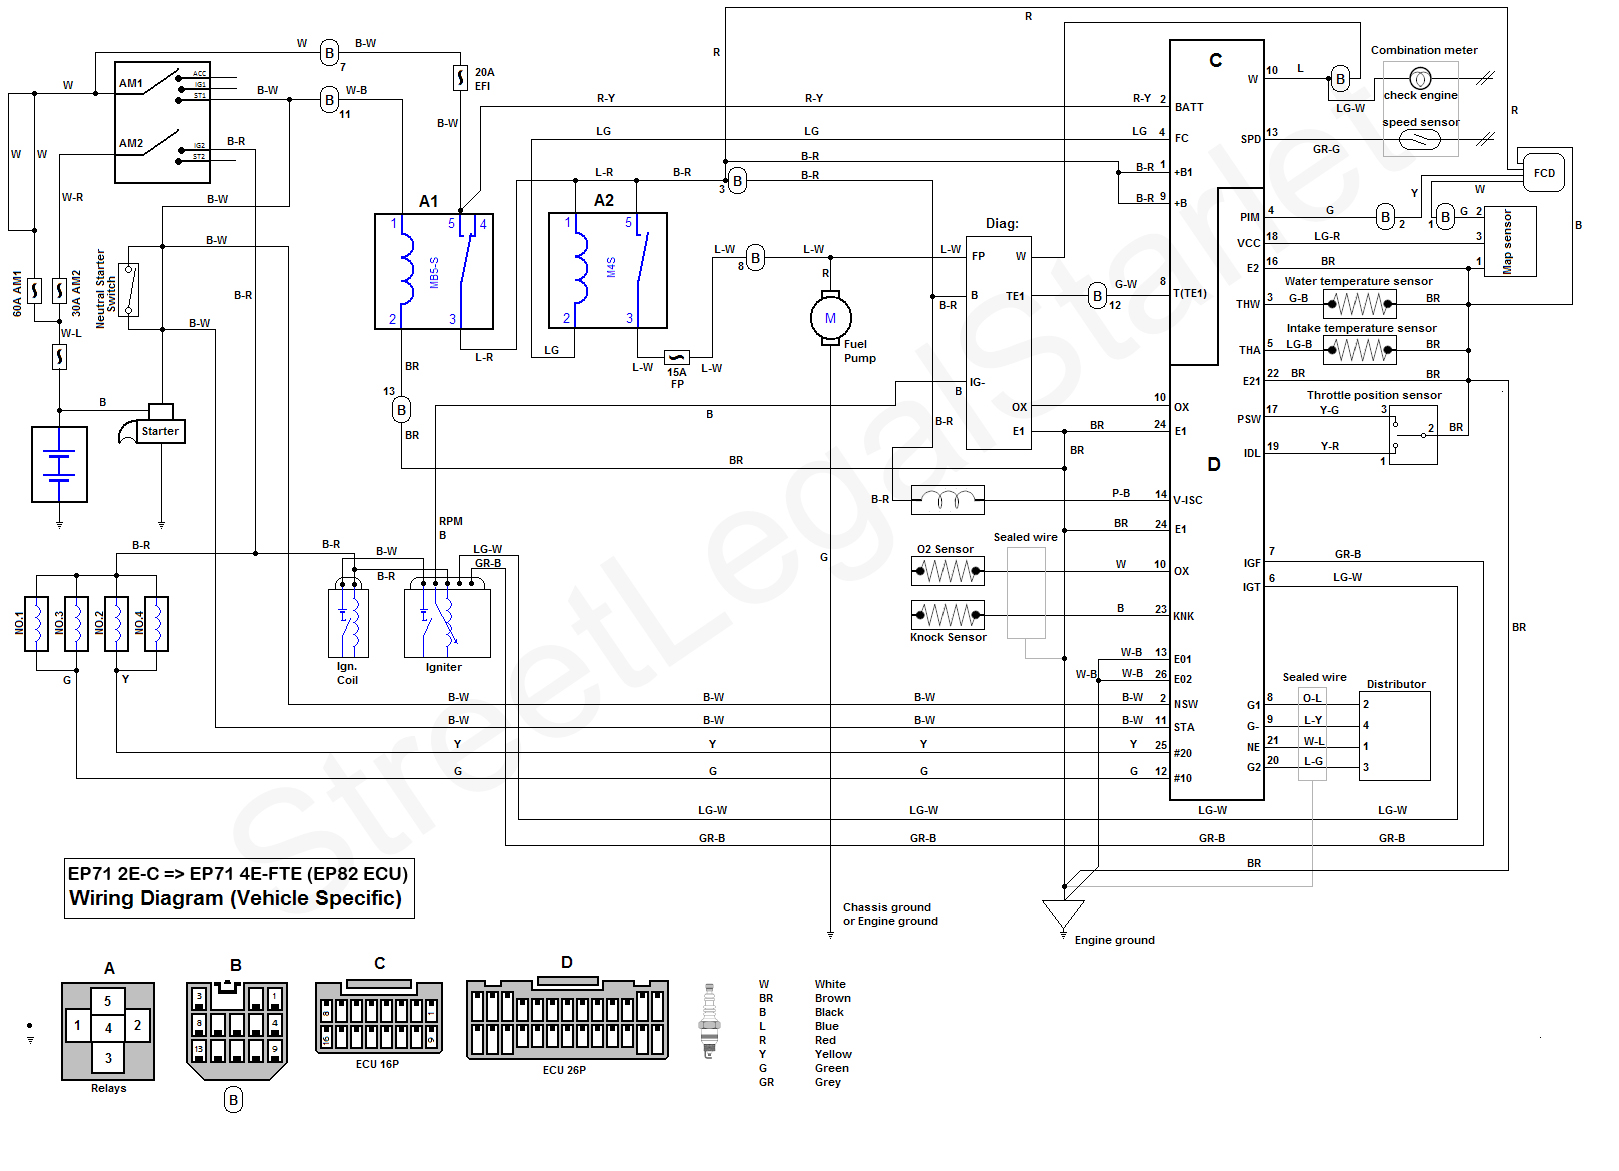 SLS EP71 2E C 4E FTE (EP82 ECU) toyota starlet wiring diagram efcaviation com toyota highlander ecu wiring diagram at sewacar.co